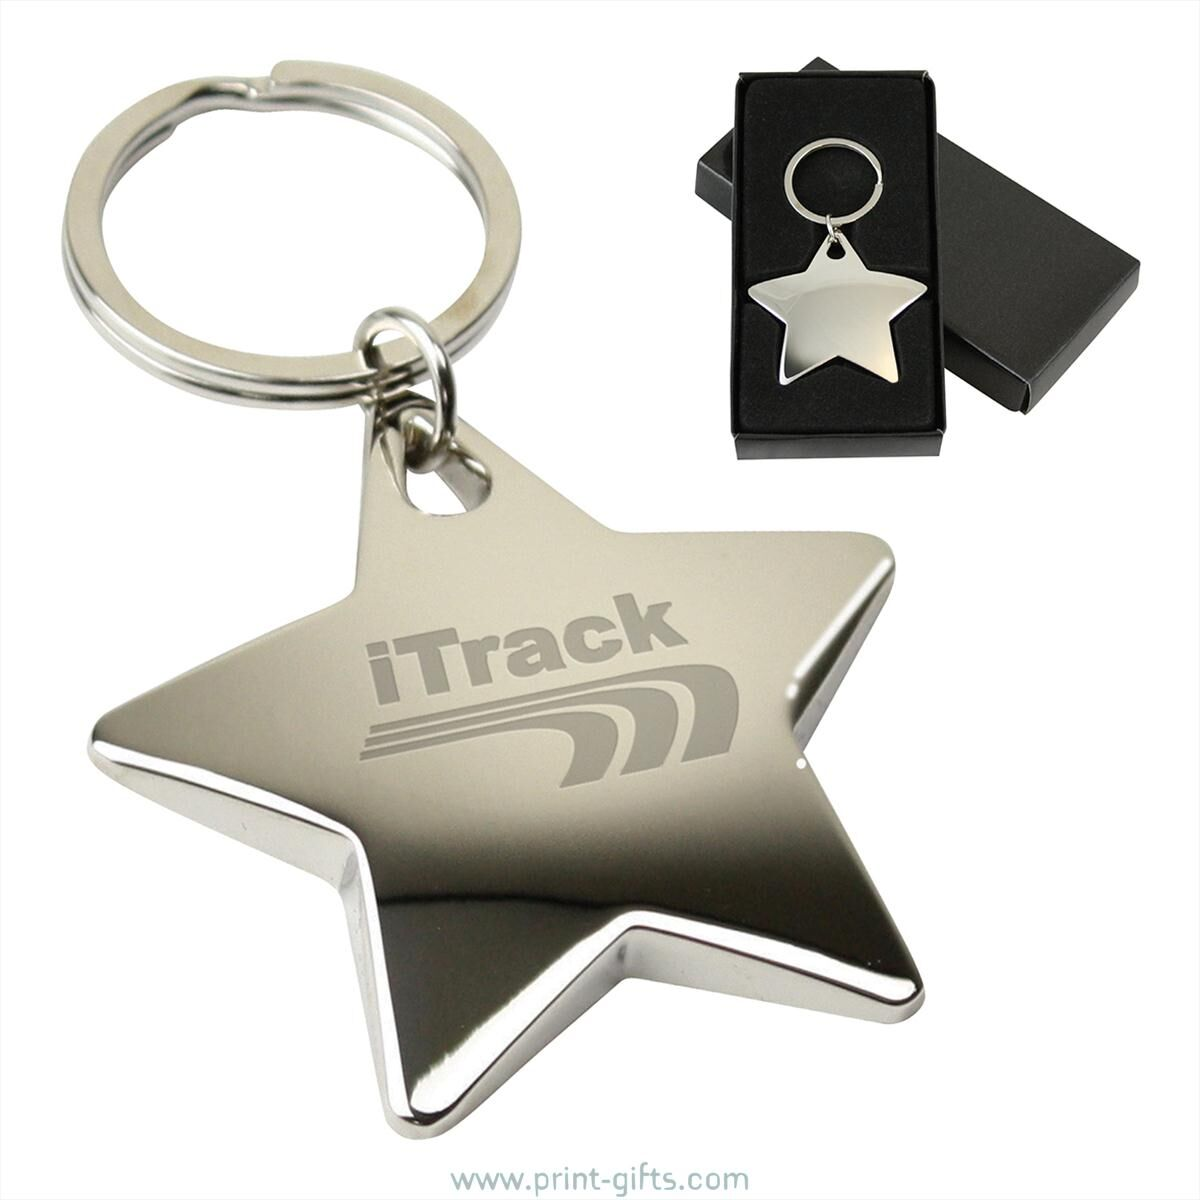 Starlight Metal Keyrings for Engraving - polished metal